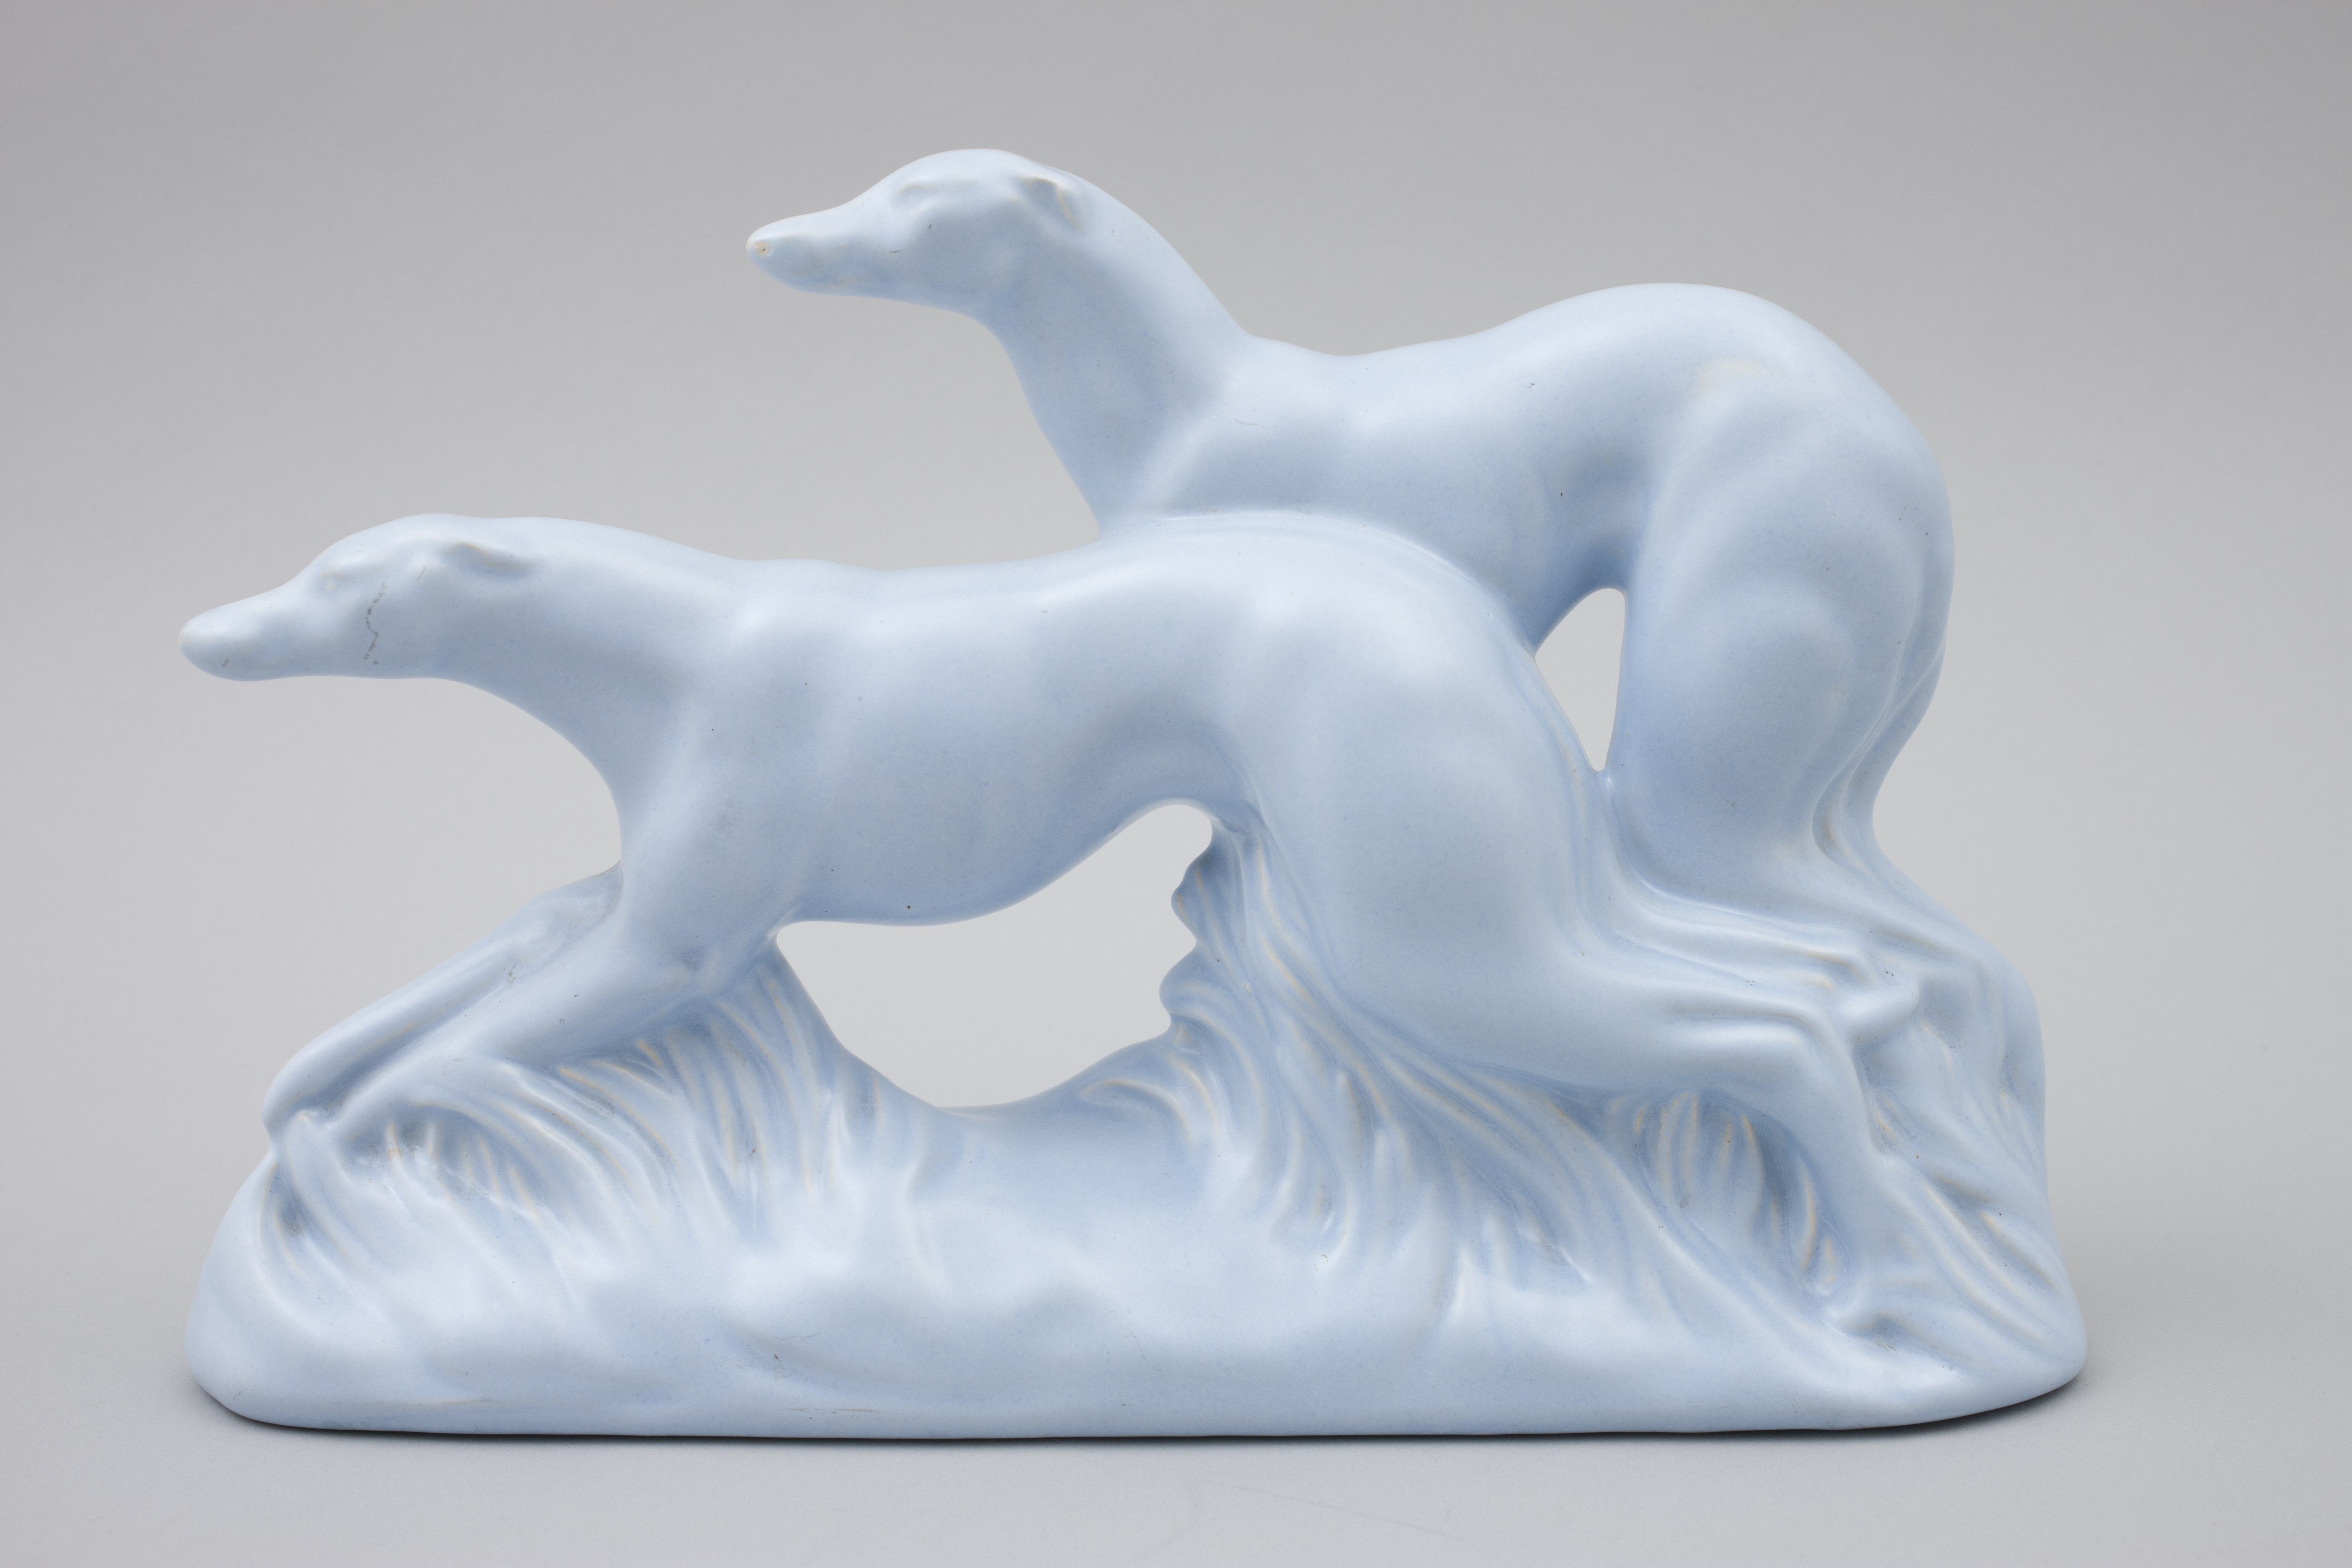 An earthenware figure of two greyhound. The entire figurine is blue glazed and the greyhounds are in a running pose.